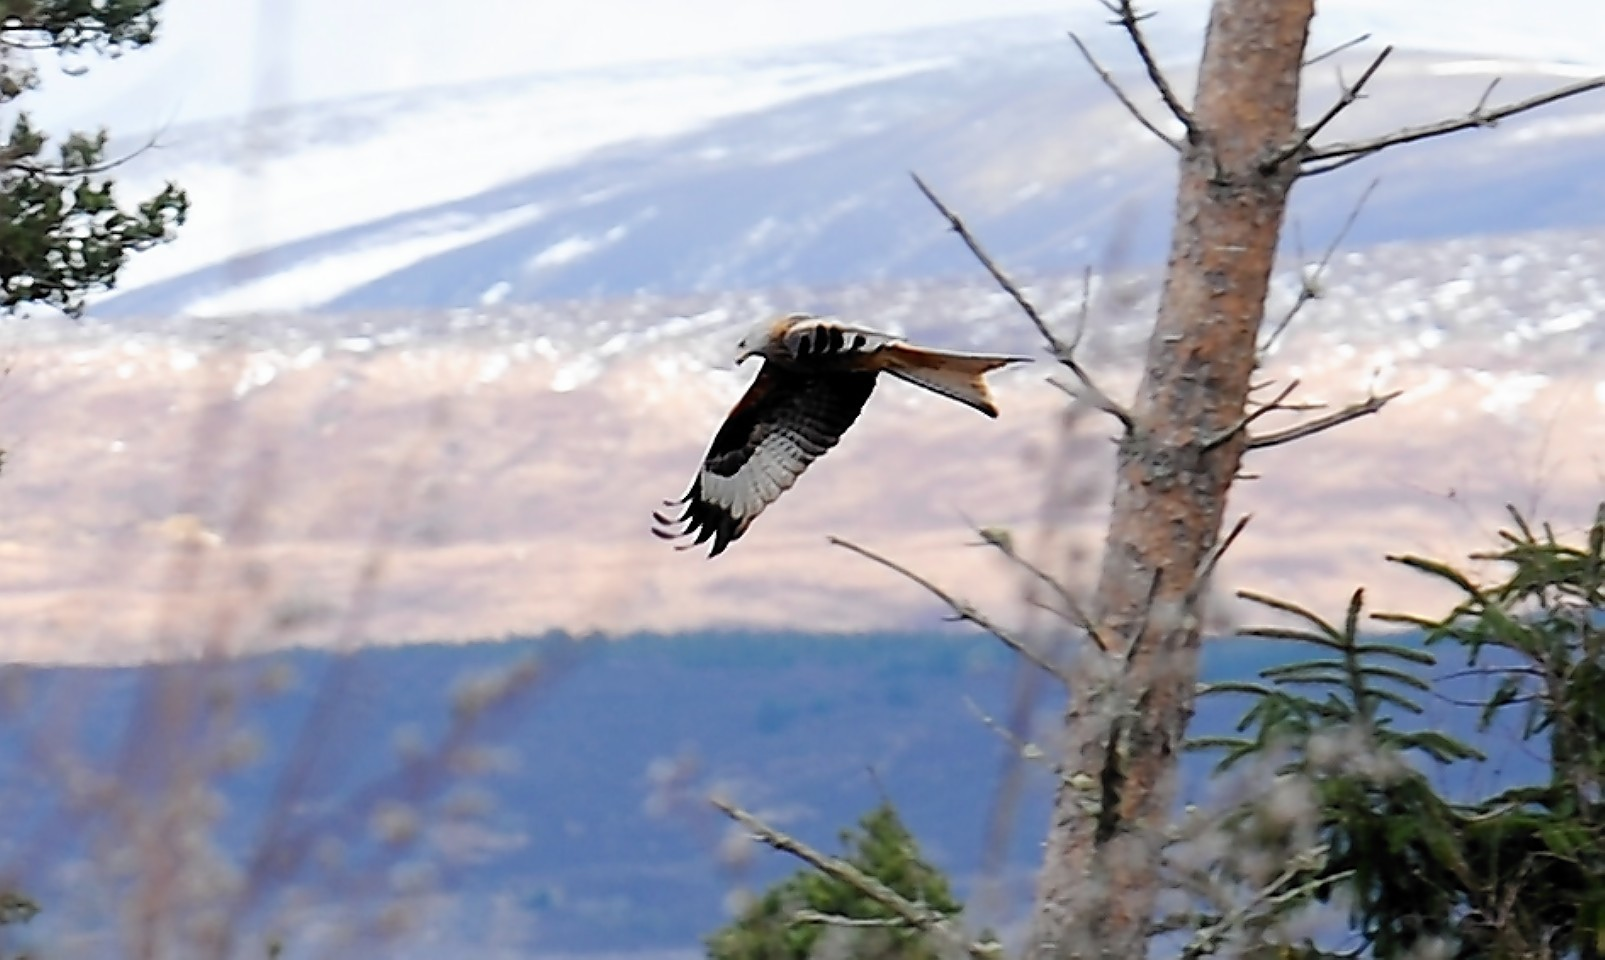 A red kite in flight near Conon Bridge